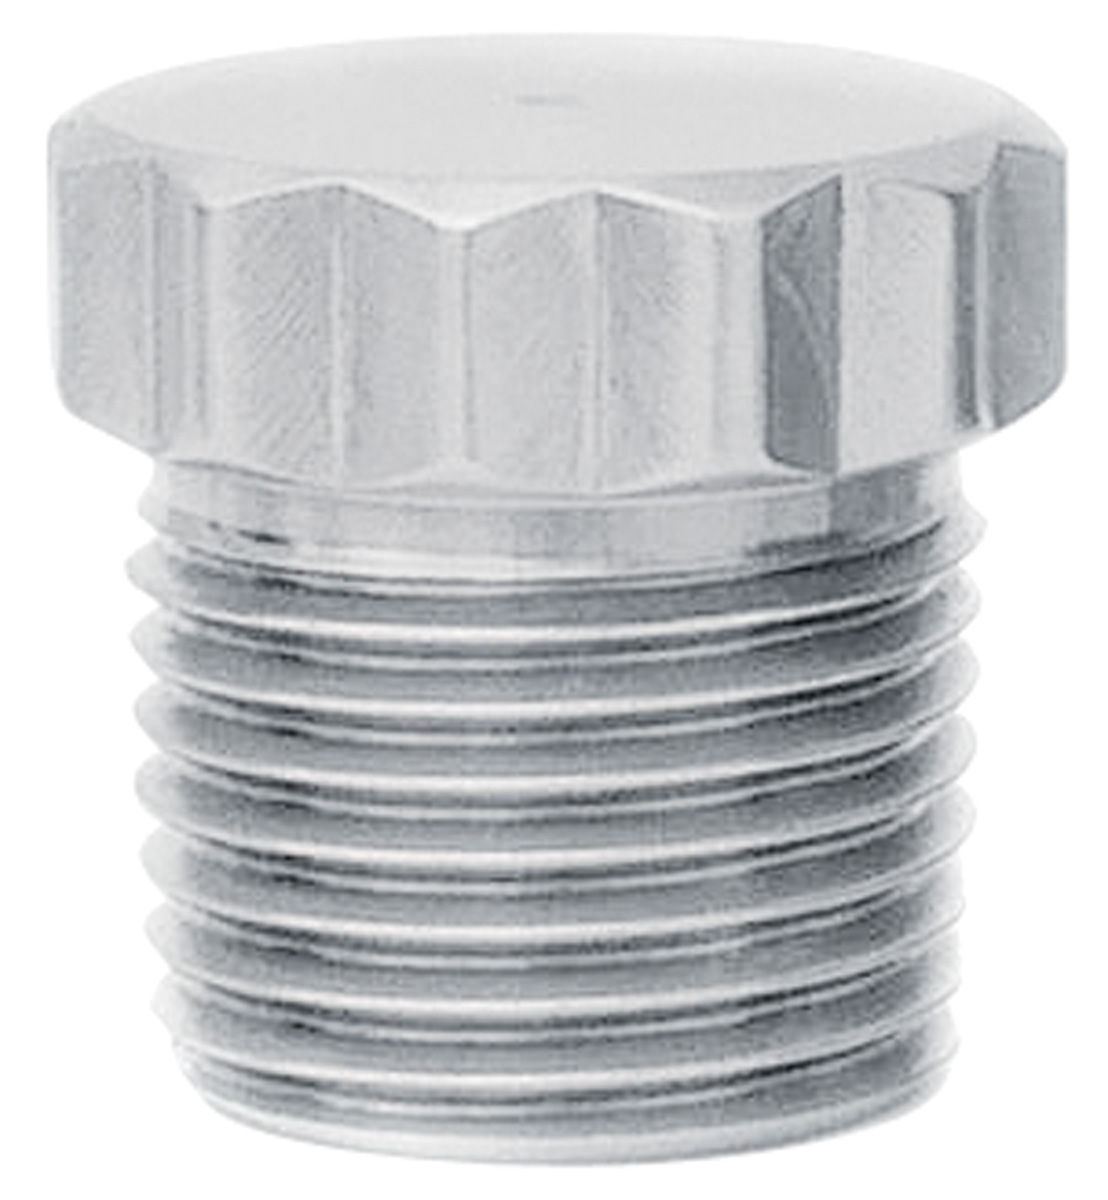 Chevelle fitting stainless steel pipe plug